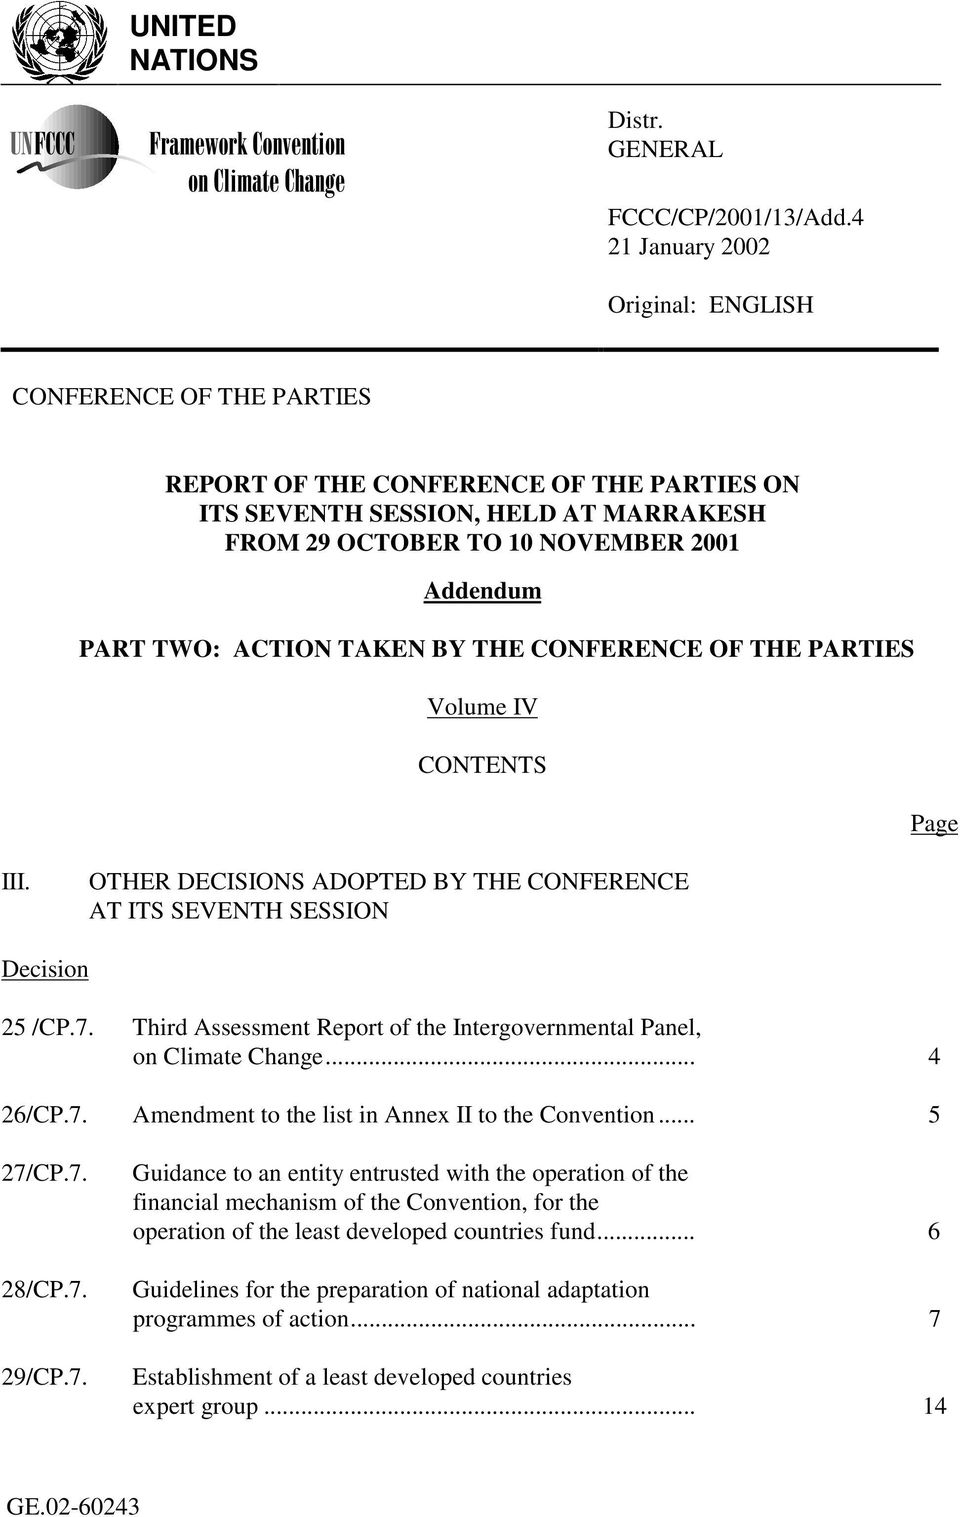 ACTION TAKEN BY THE CONFERENCE OF THE PARTIES Volume IV CONTENTS Page III. OTHER DECISIONS ADOPTED BY THE CONFERENCE AT ITS SEVENTH SESSION Decision 25 /CP.7.